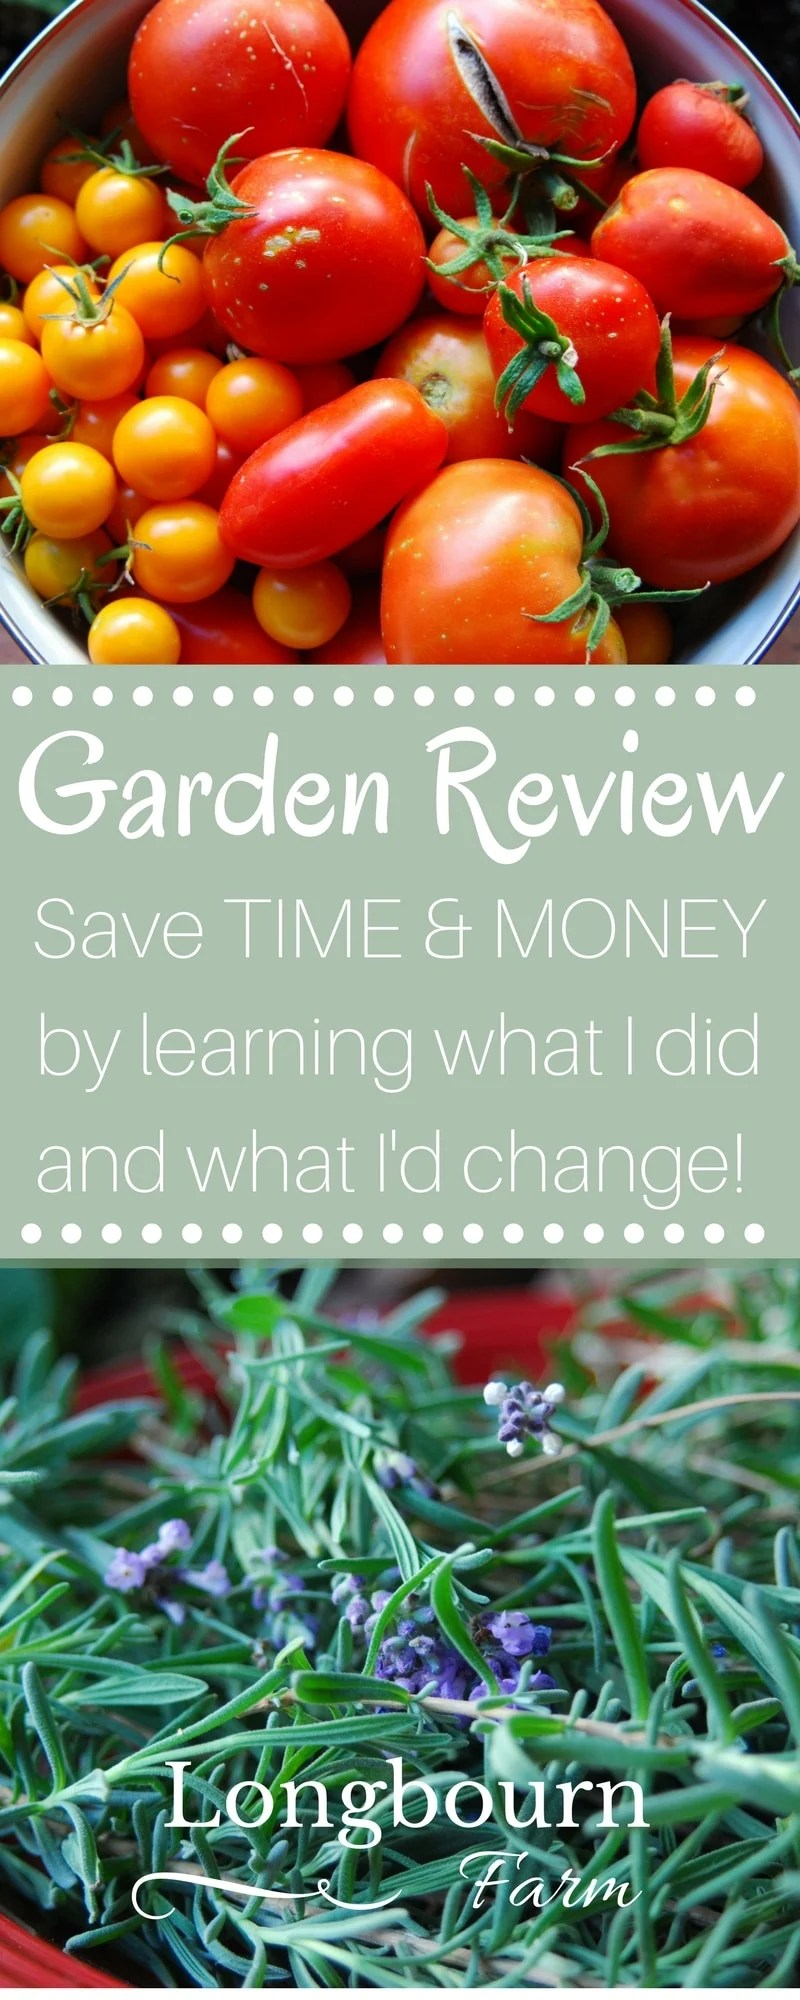 Read how my garden went this year! It will help you make your own garden improvements, save time in your garden and save money in your garden!